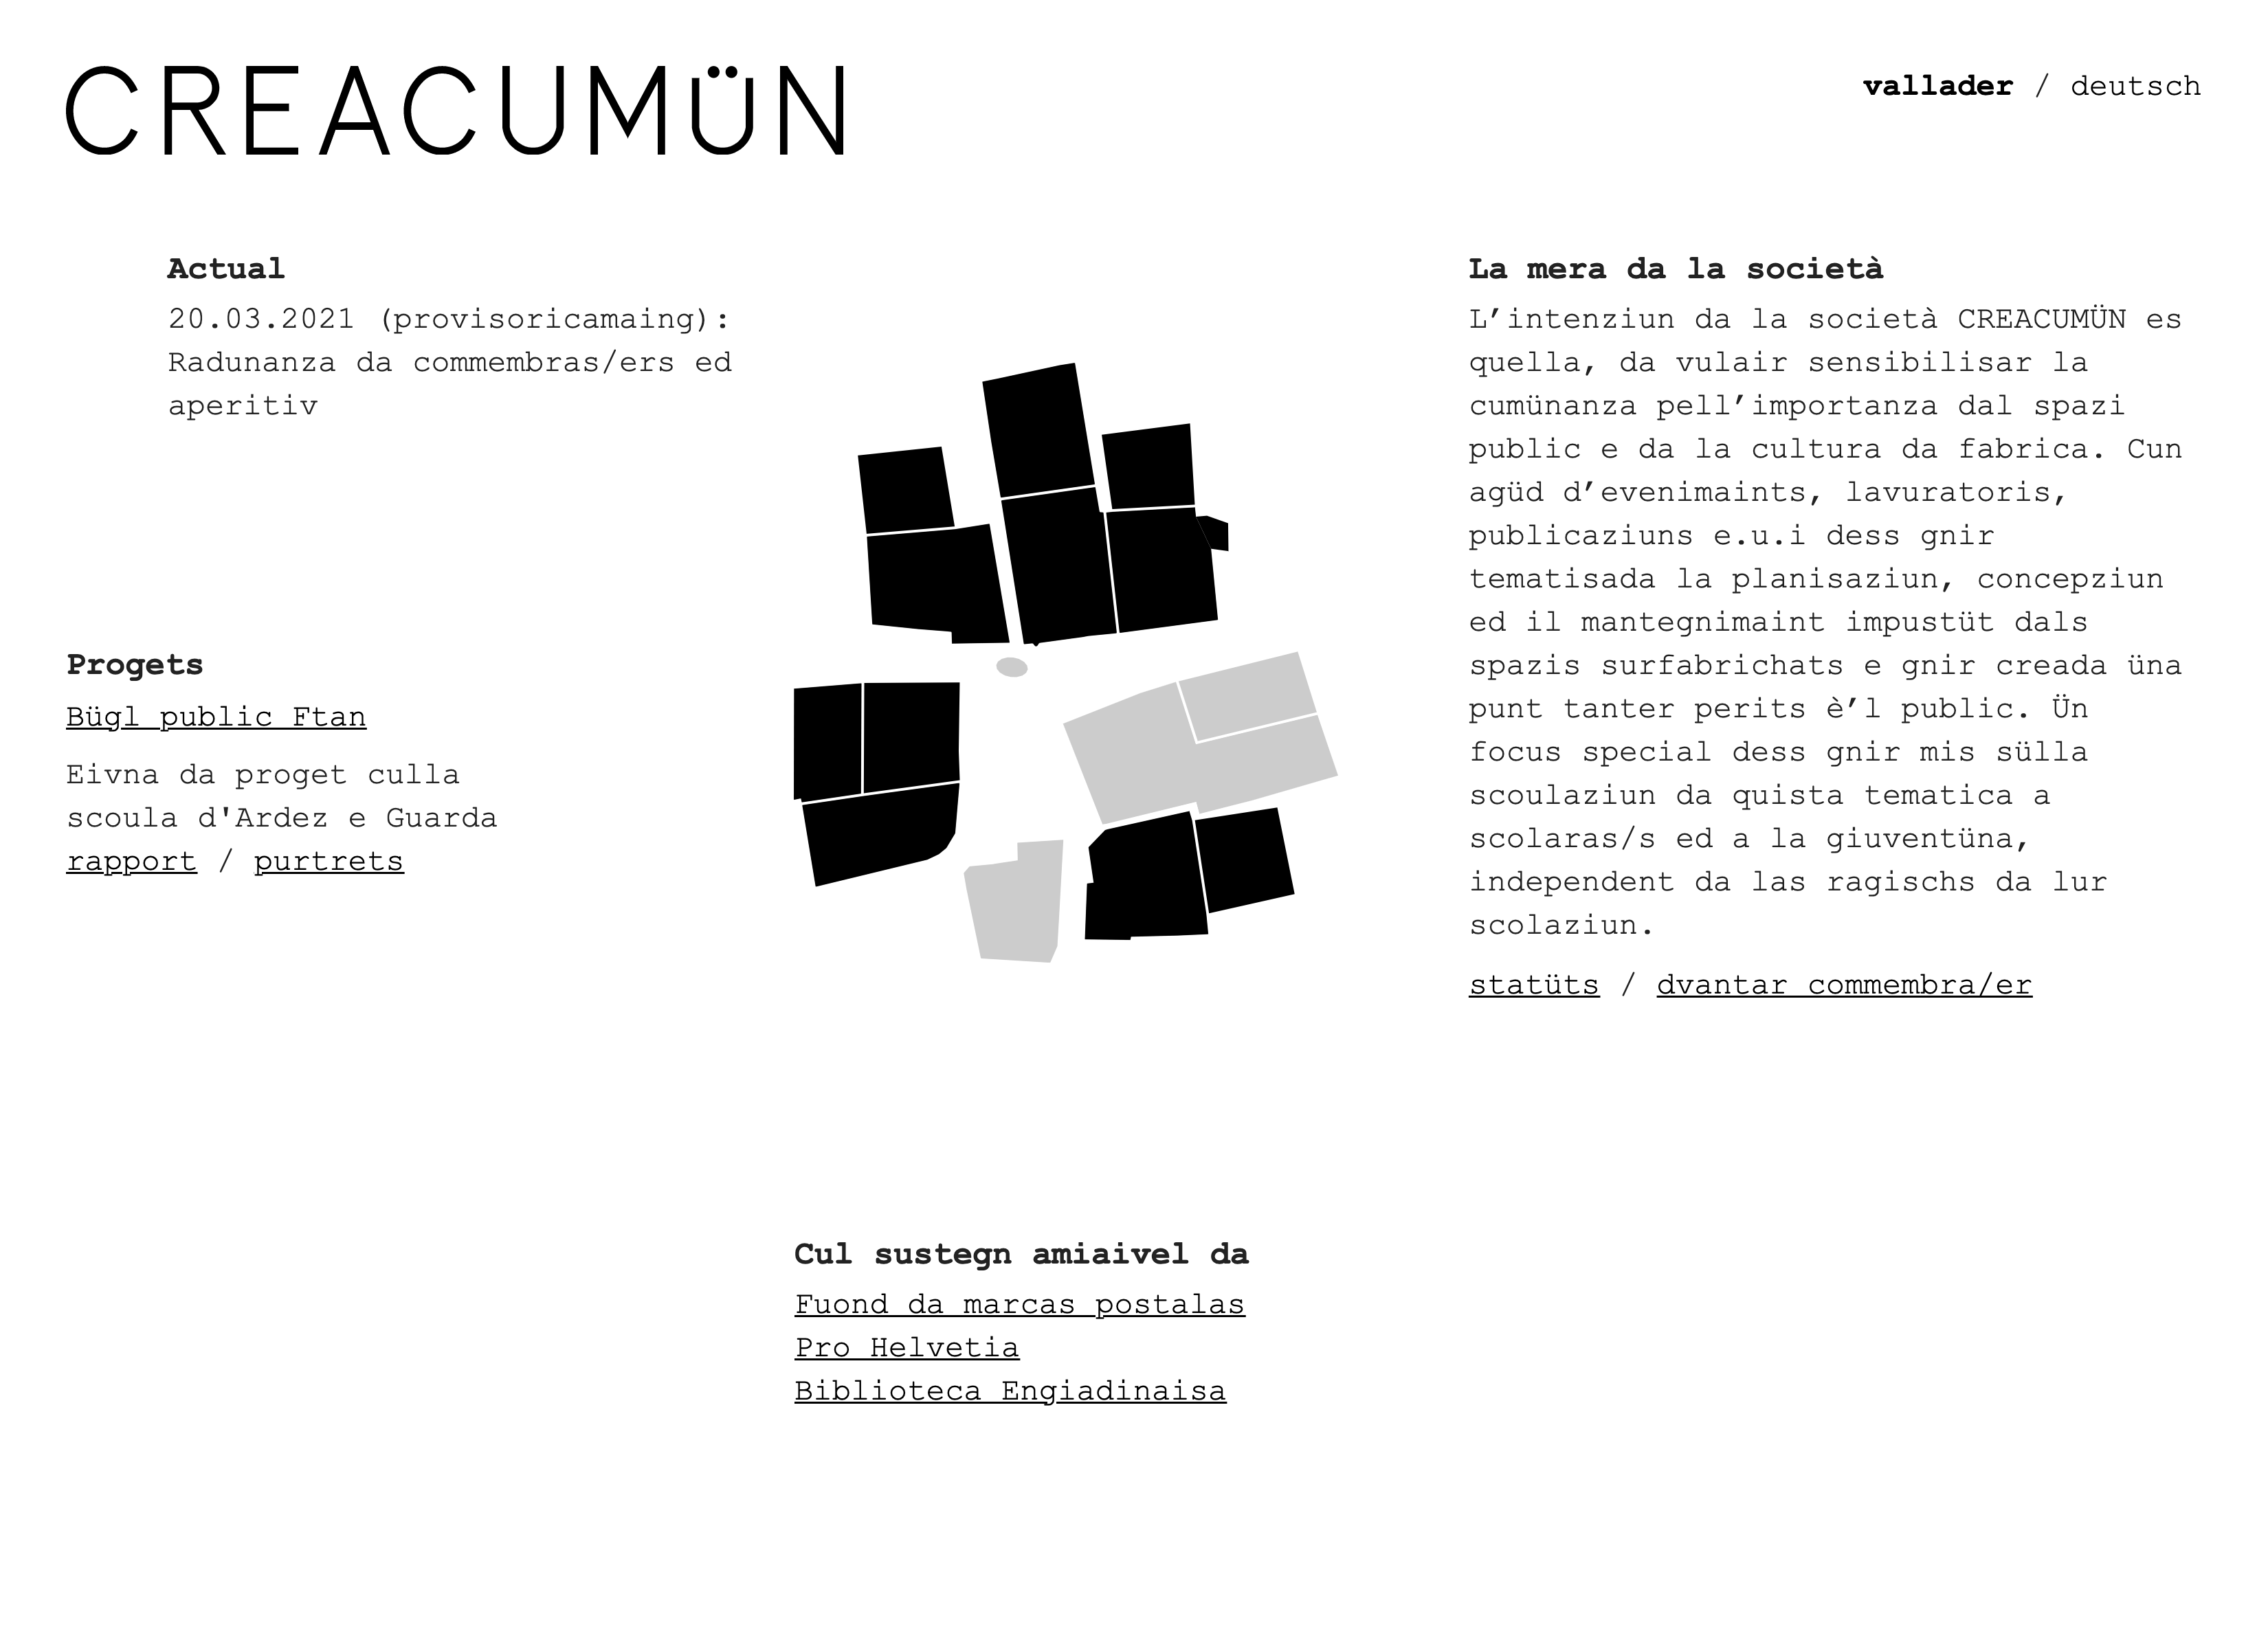 Screenshot of the 'Creacumün' website